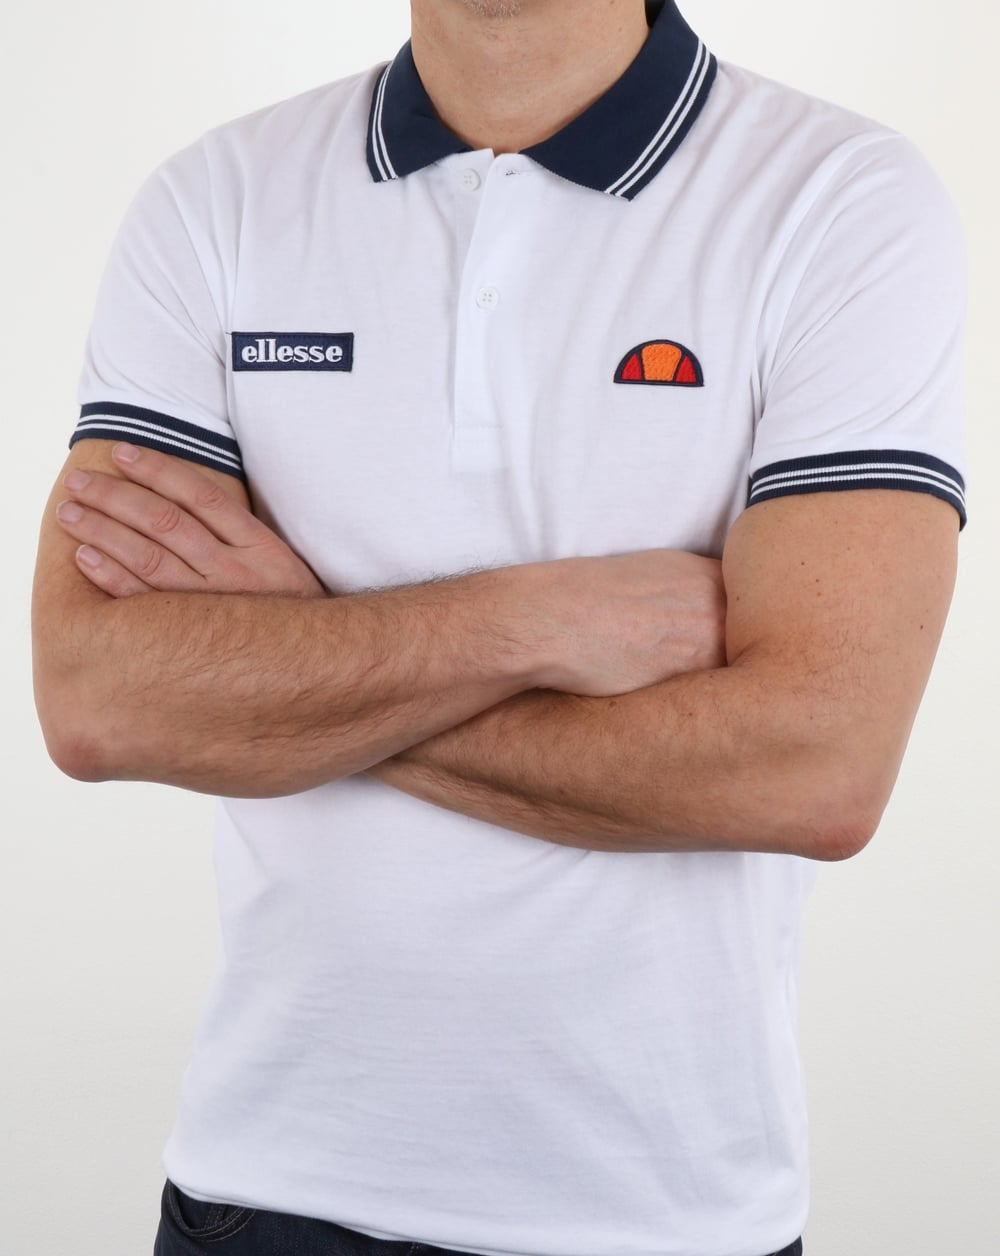 6a7289c246 Ellesse Tipped Polo Shirt White-Navy